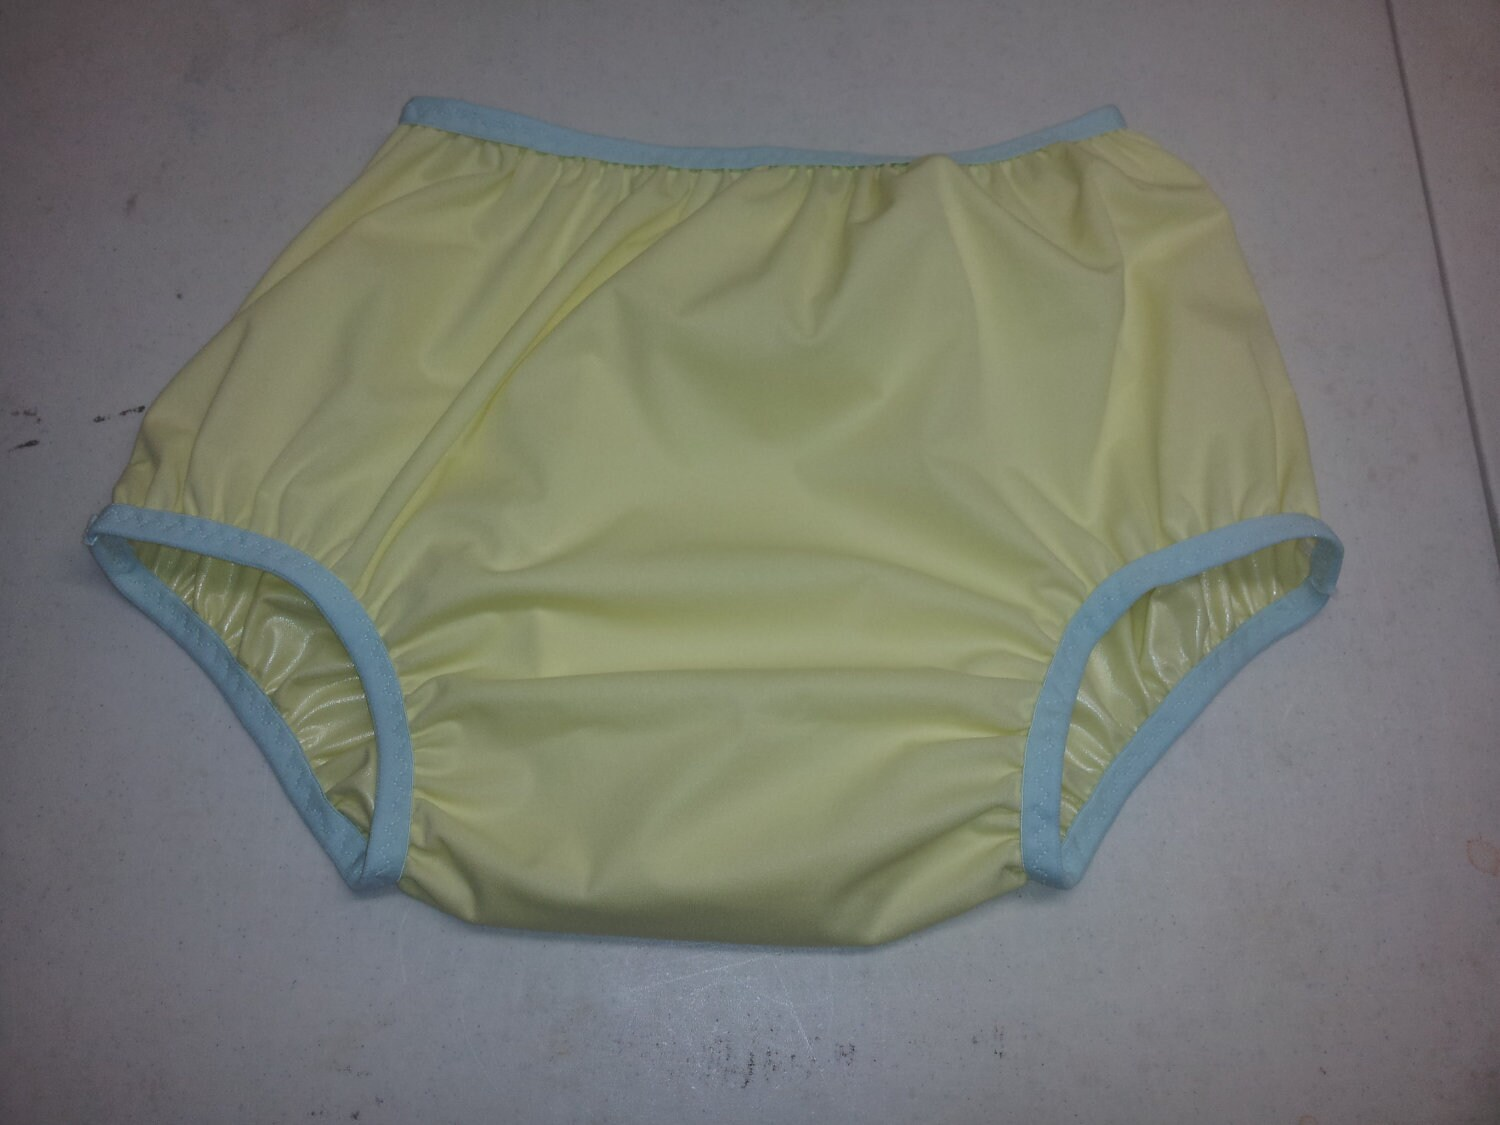 Adult Diaper Cover - Yellow and Blue - Size 28 to 38 inches